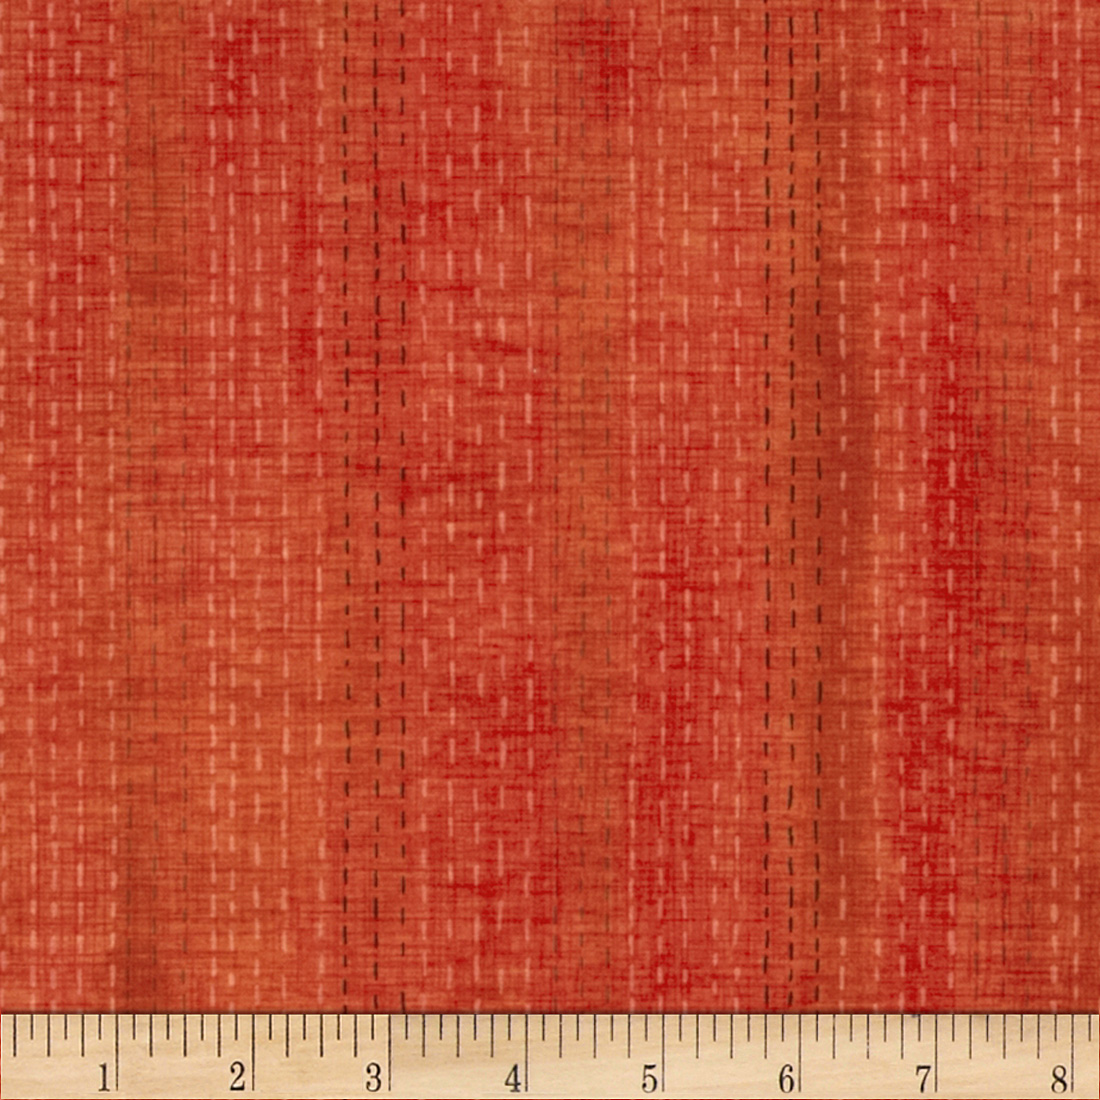 Studio Stash Broken Dash Stripe Tangerine Fabric